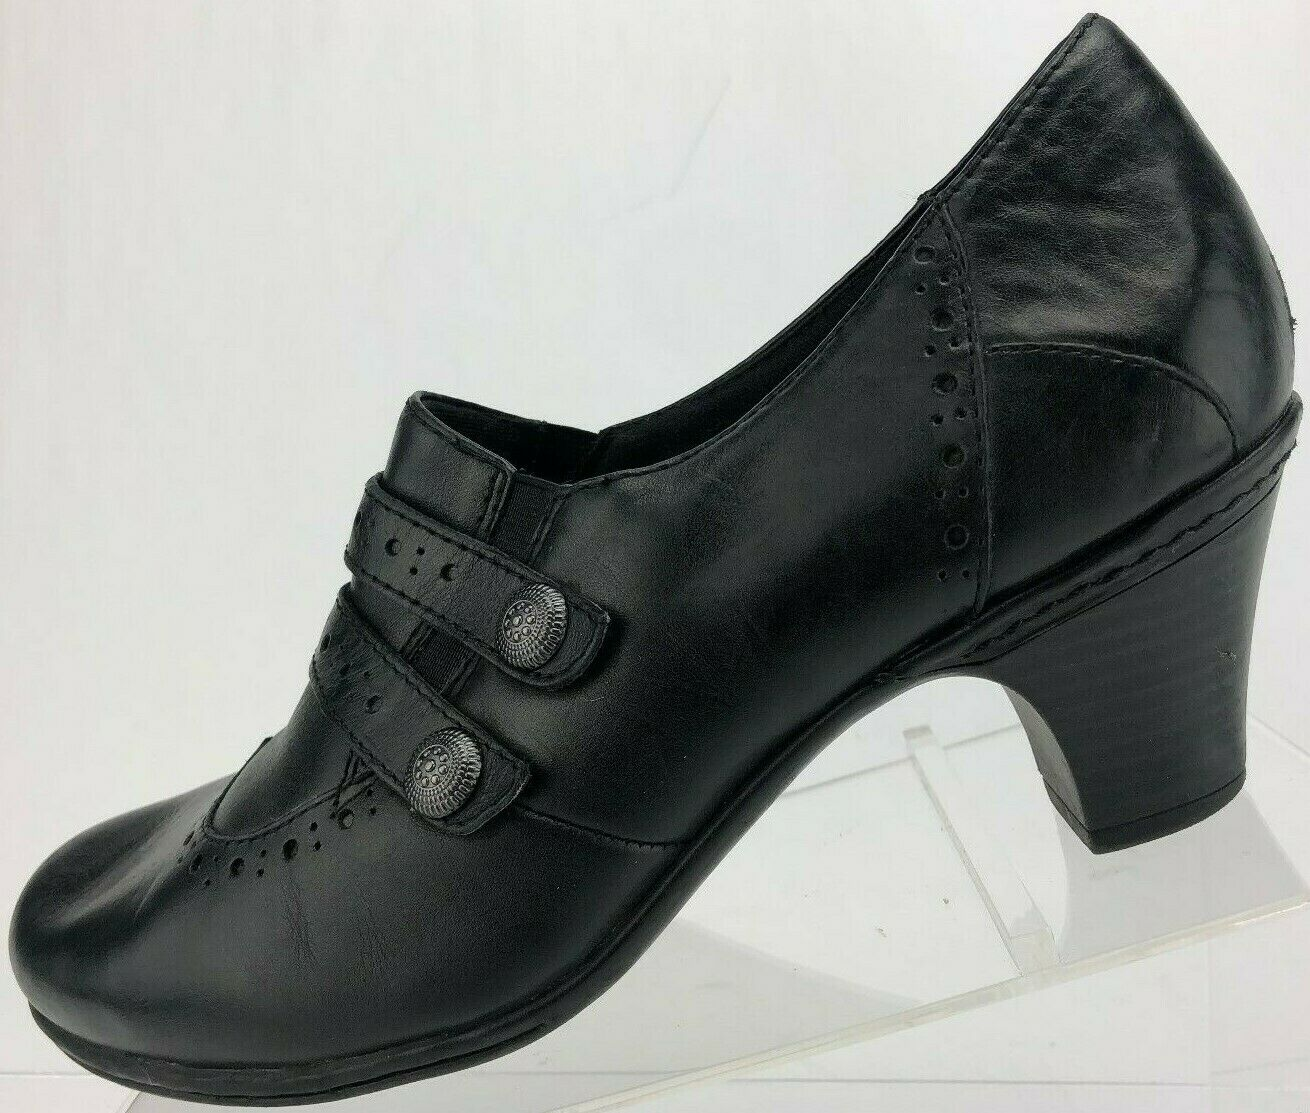 Cobb Hill by New Balance Pumps Booties Black Classic Leather Heels Womens 9.5 M